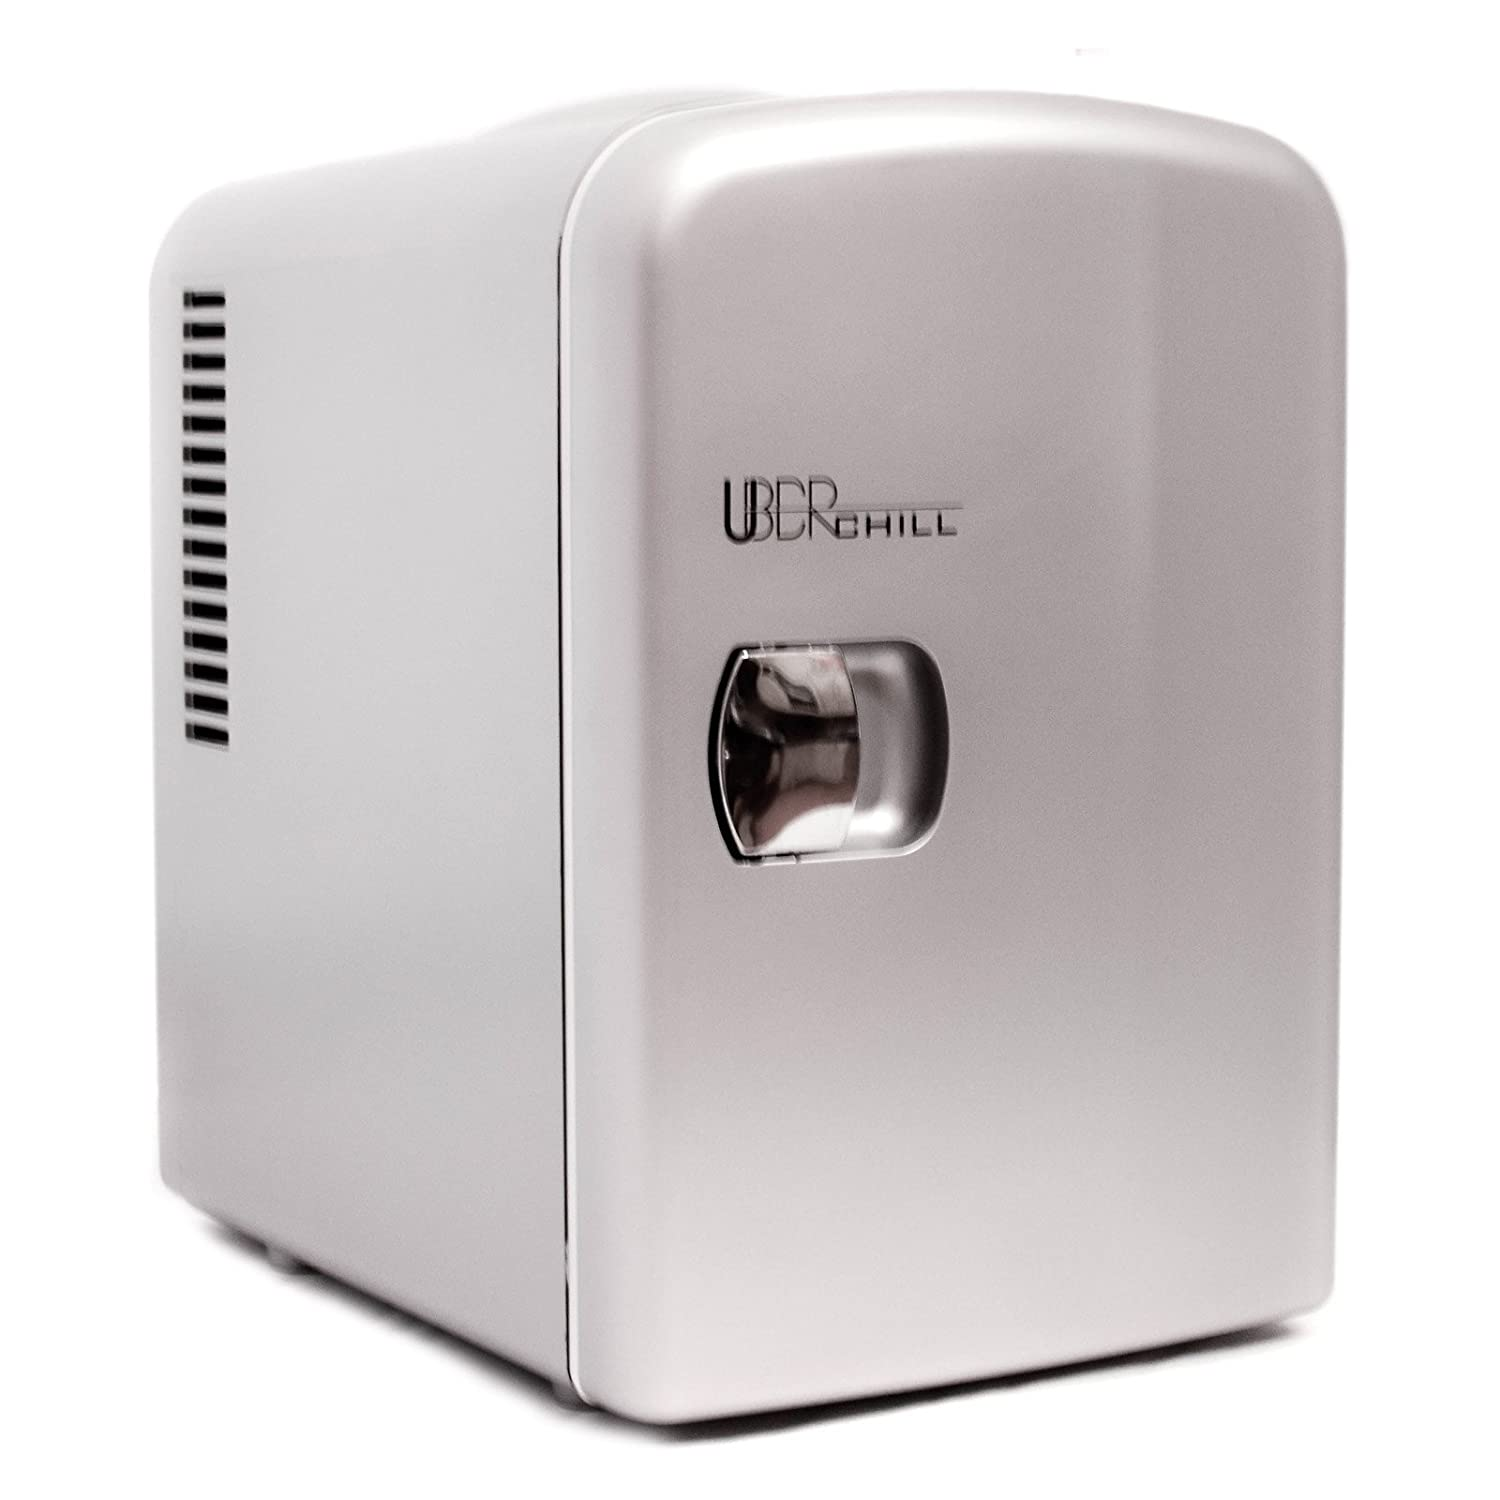 Uber Appliance UB CH1 Uber Chill Mini Fridge 6 can portable Thermoelectric  Cooler and Warmer mini fridge for bedroom  office or. Amazon com  Compact Refrigerators  Home   Kitchen